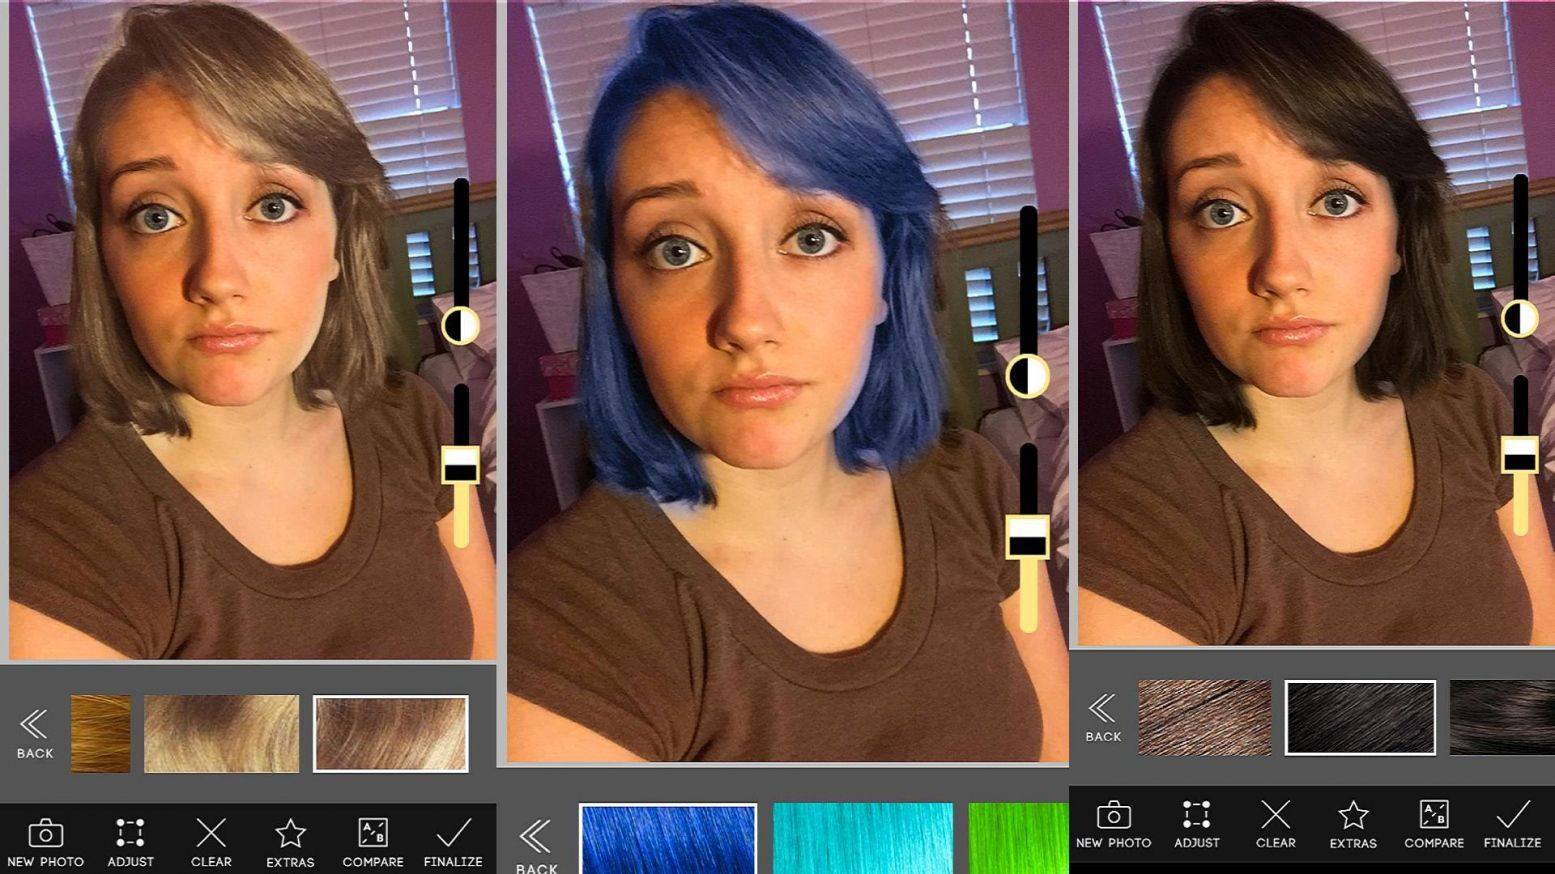 App To Change Your Hair Color Best Hair Color With Highlights Check More At Http Www Fitnursetaylor Com App To Change Ide Warna Rambut Wrapping Ideas Inai